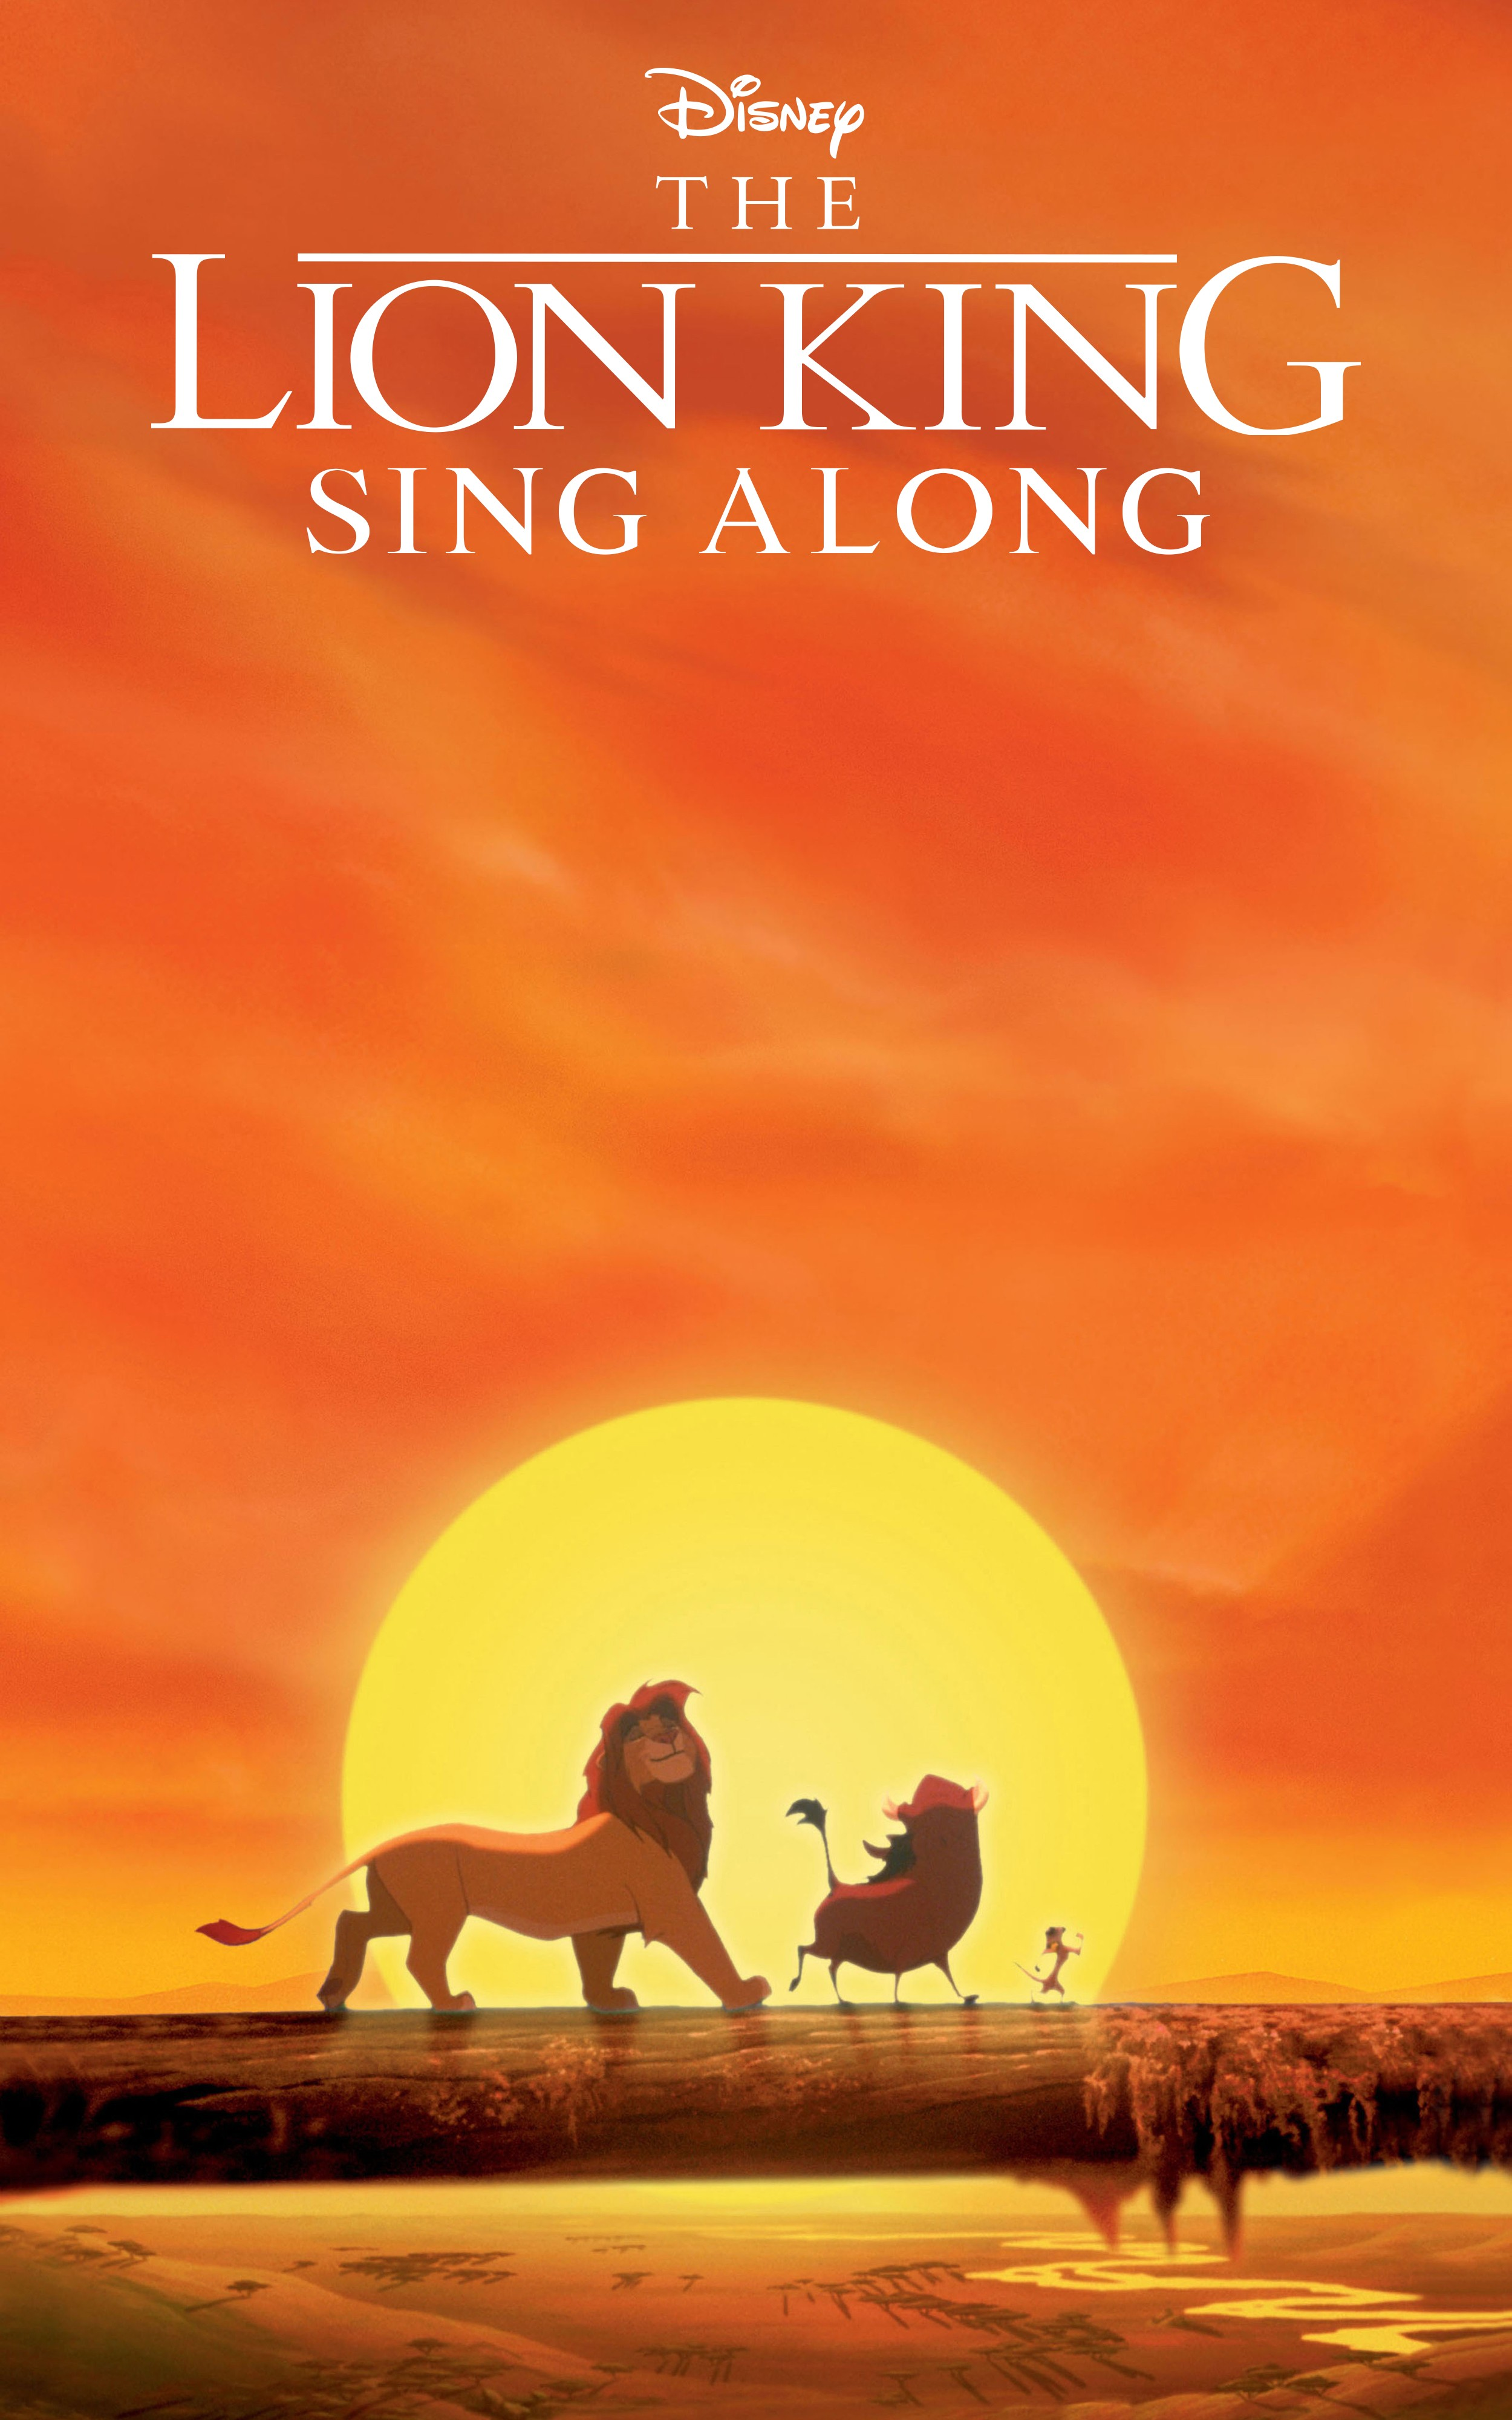 THE LION KING [1994] - SING ALONG